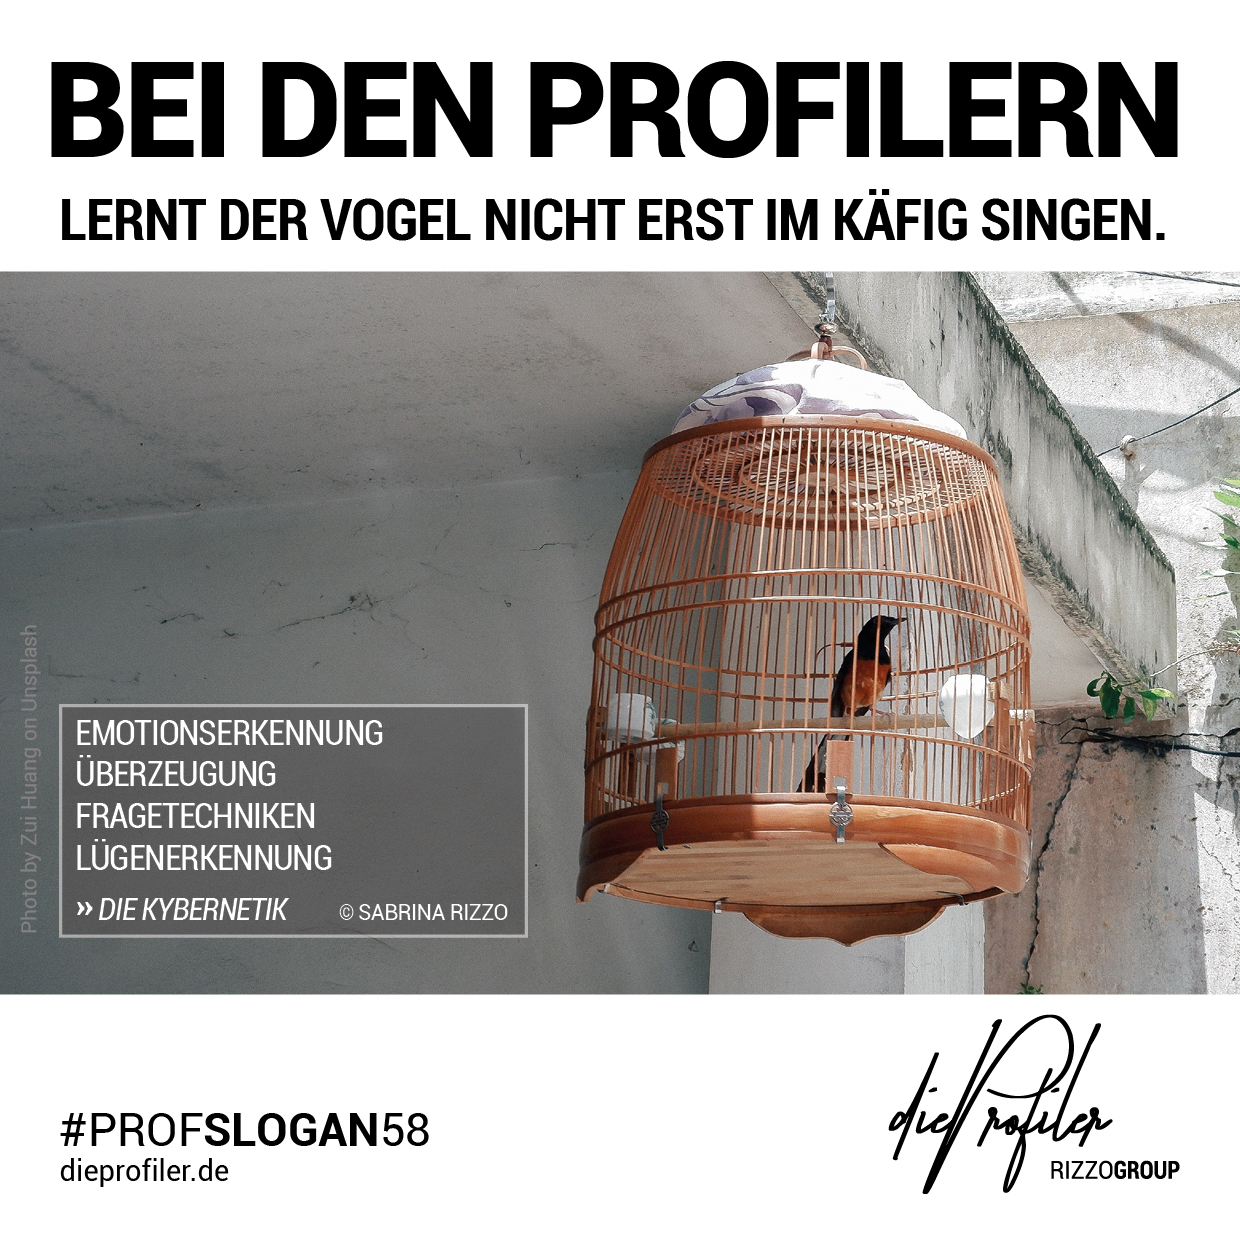 Profilerslogan58